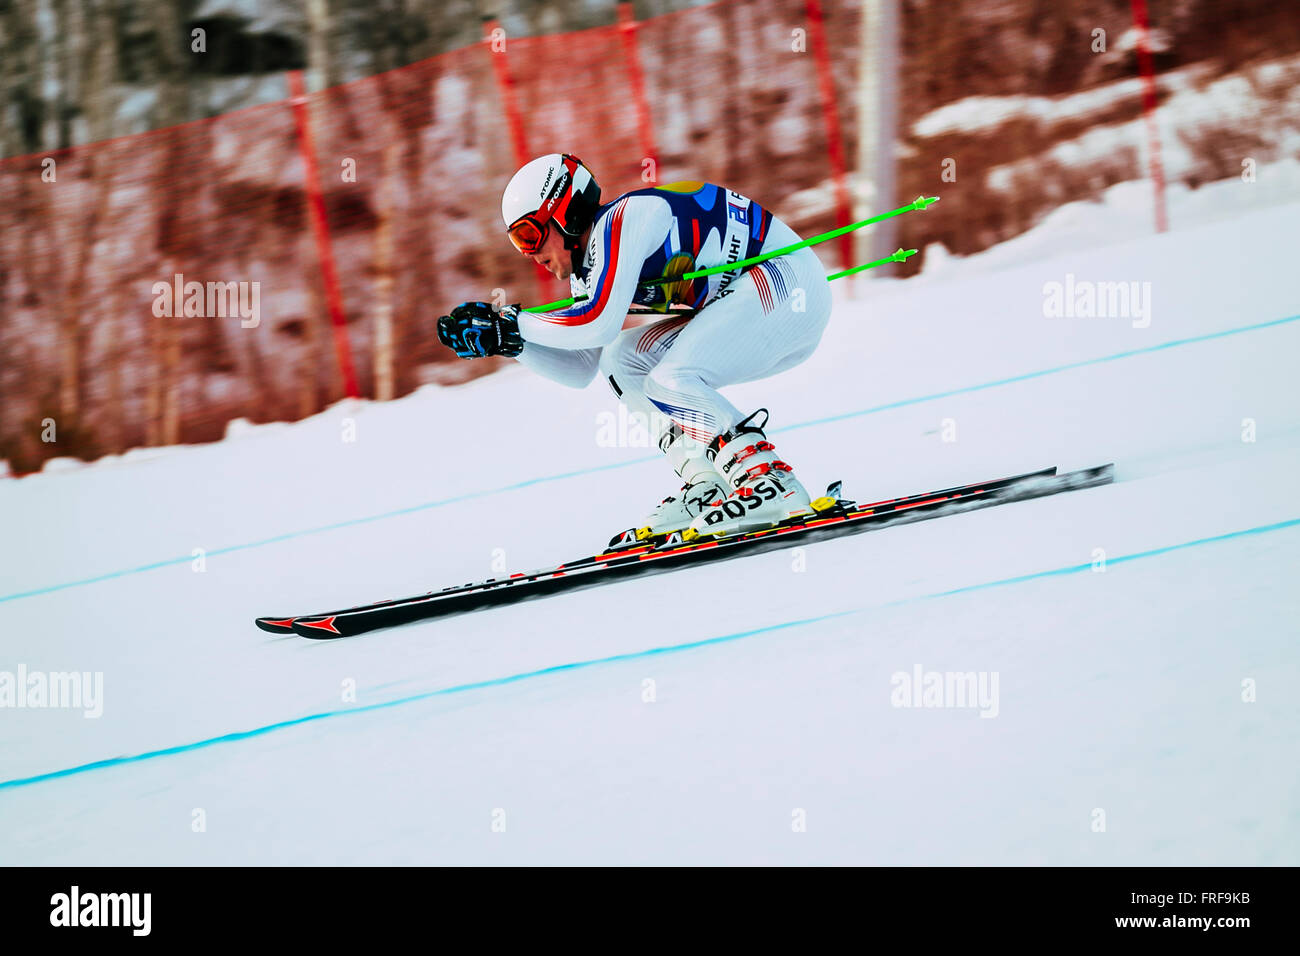 downhill racer young men in competition Russian Cup in alpine skiing - Stock Image